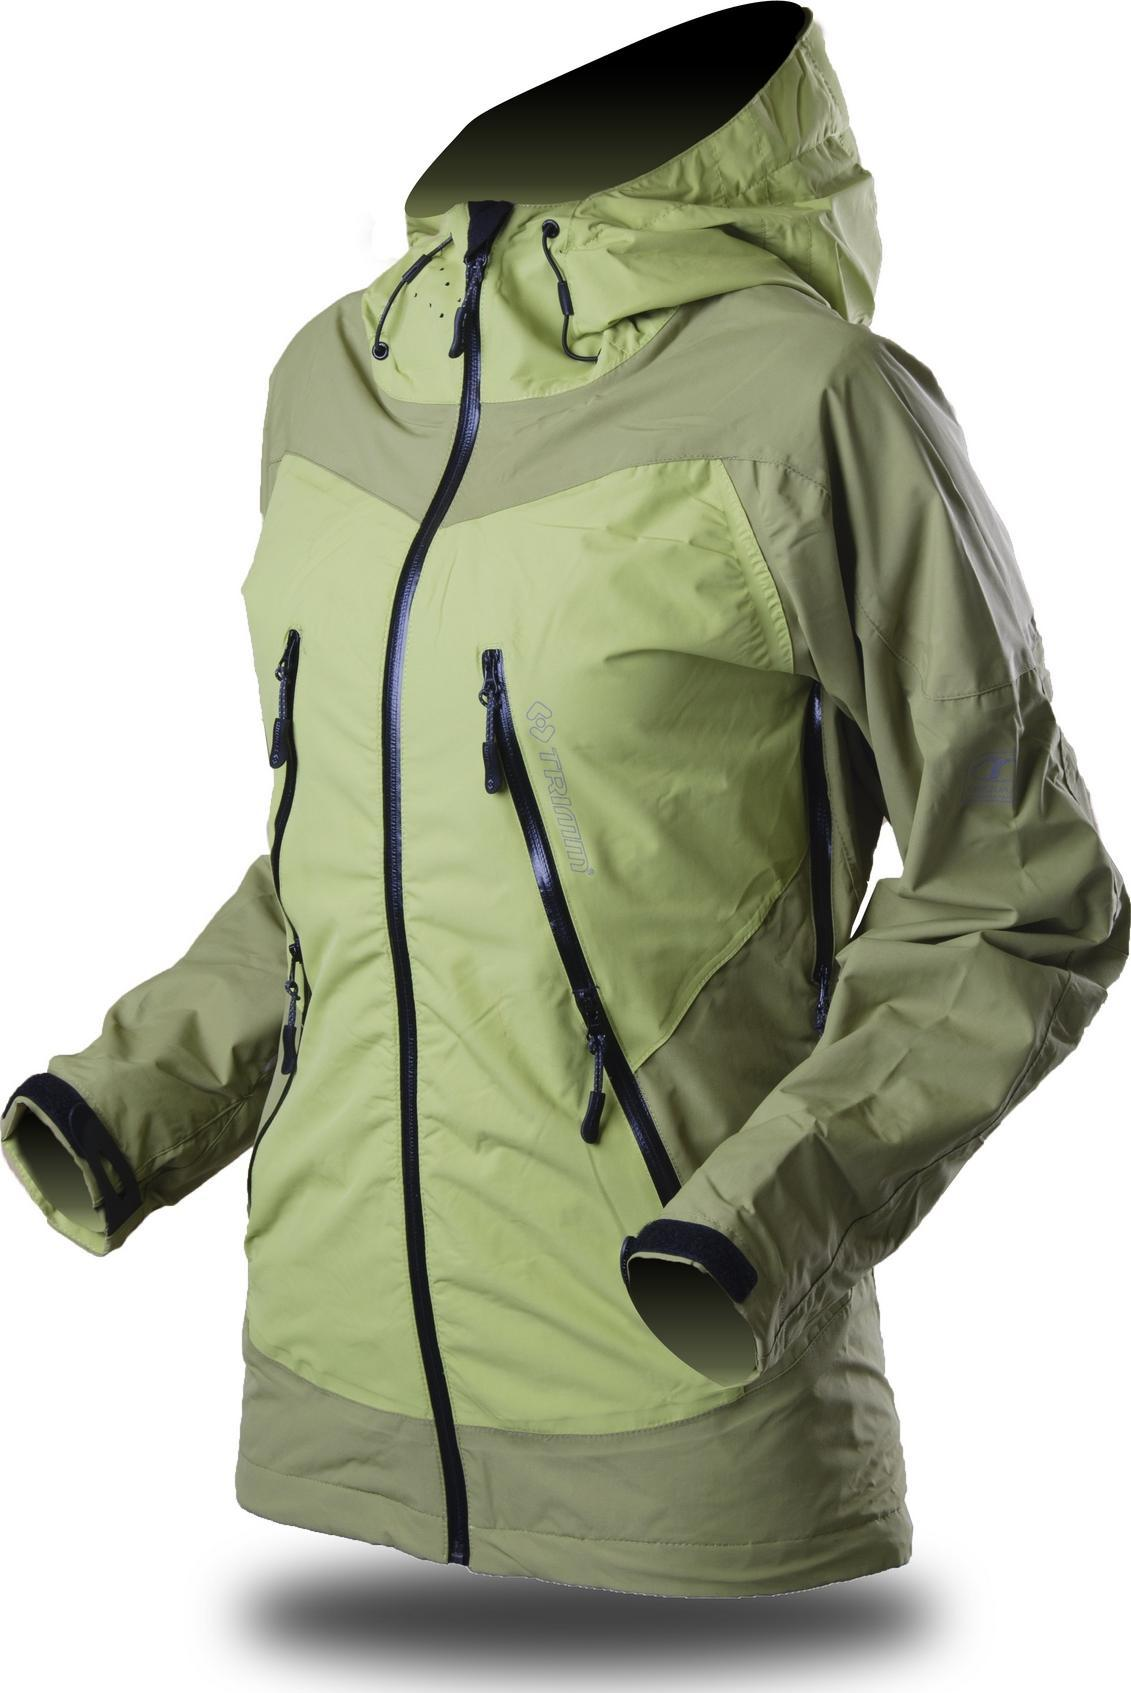 Trimm Patagonia Lady Warm Green Velikost: L